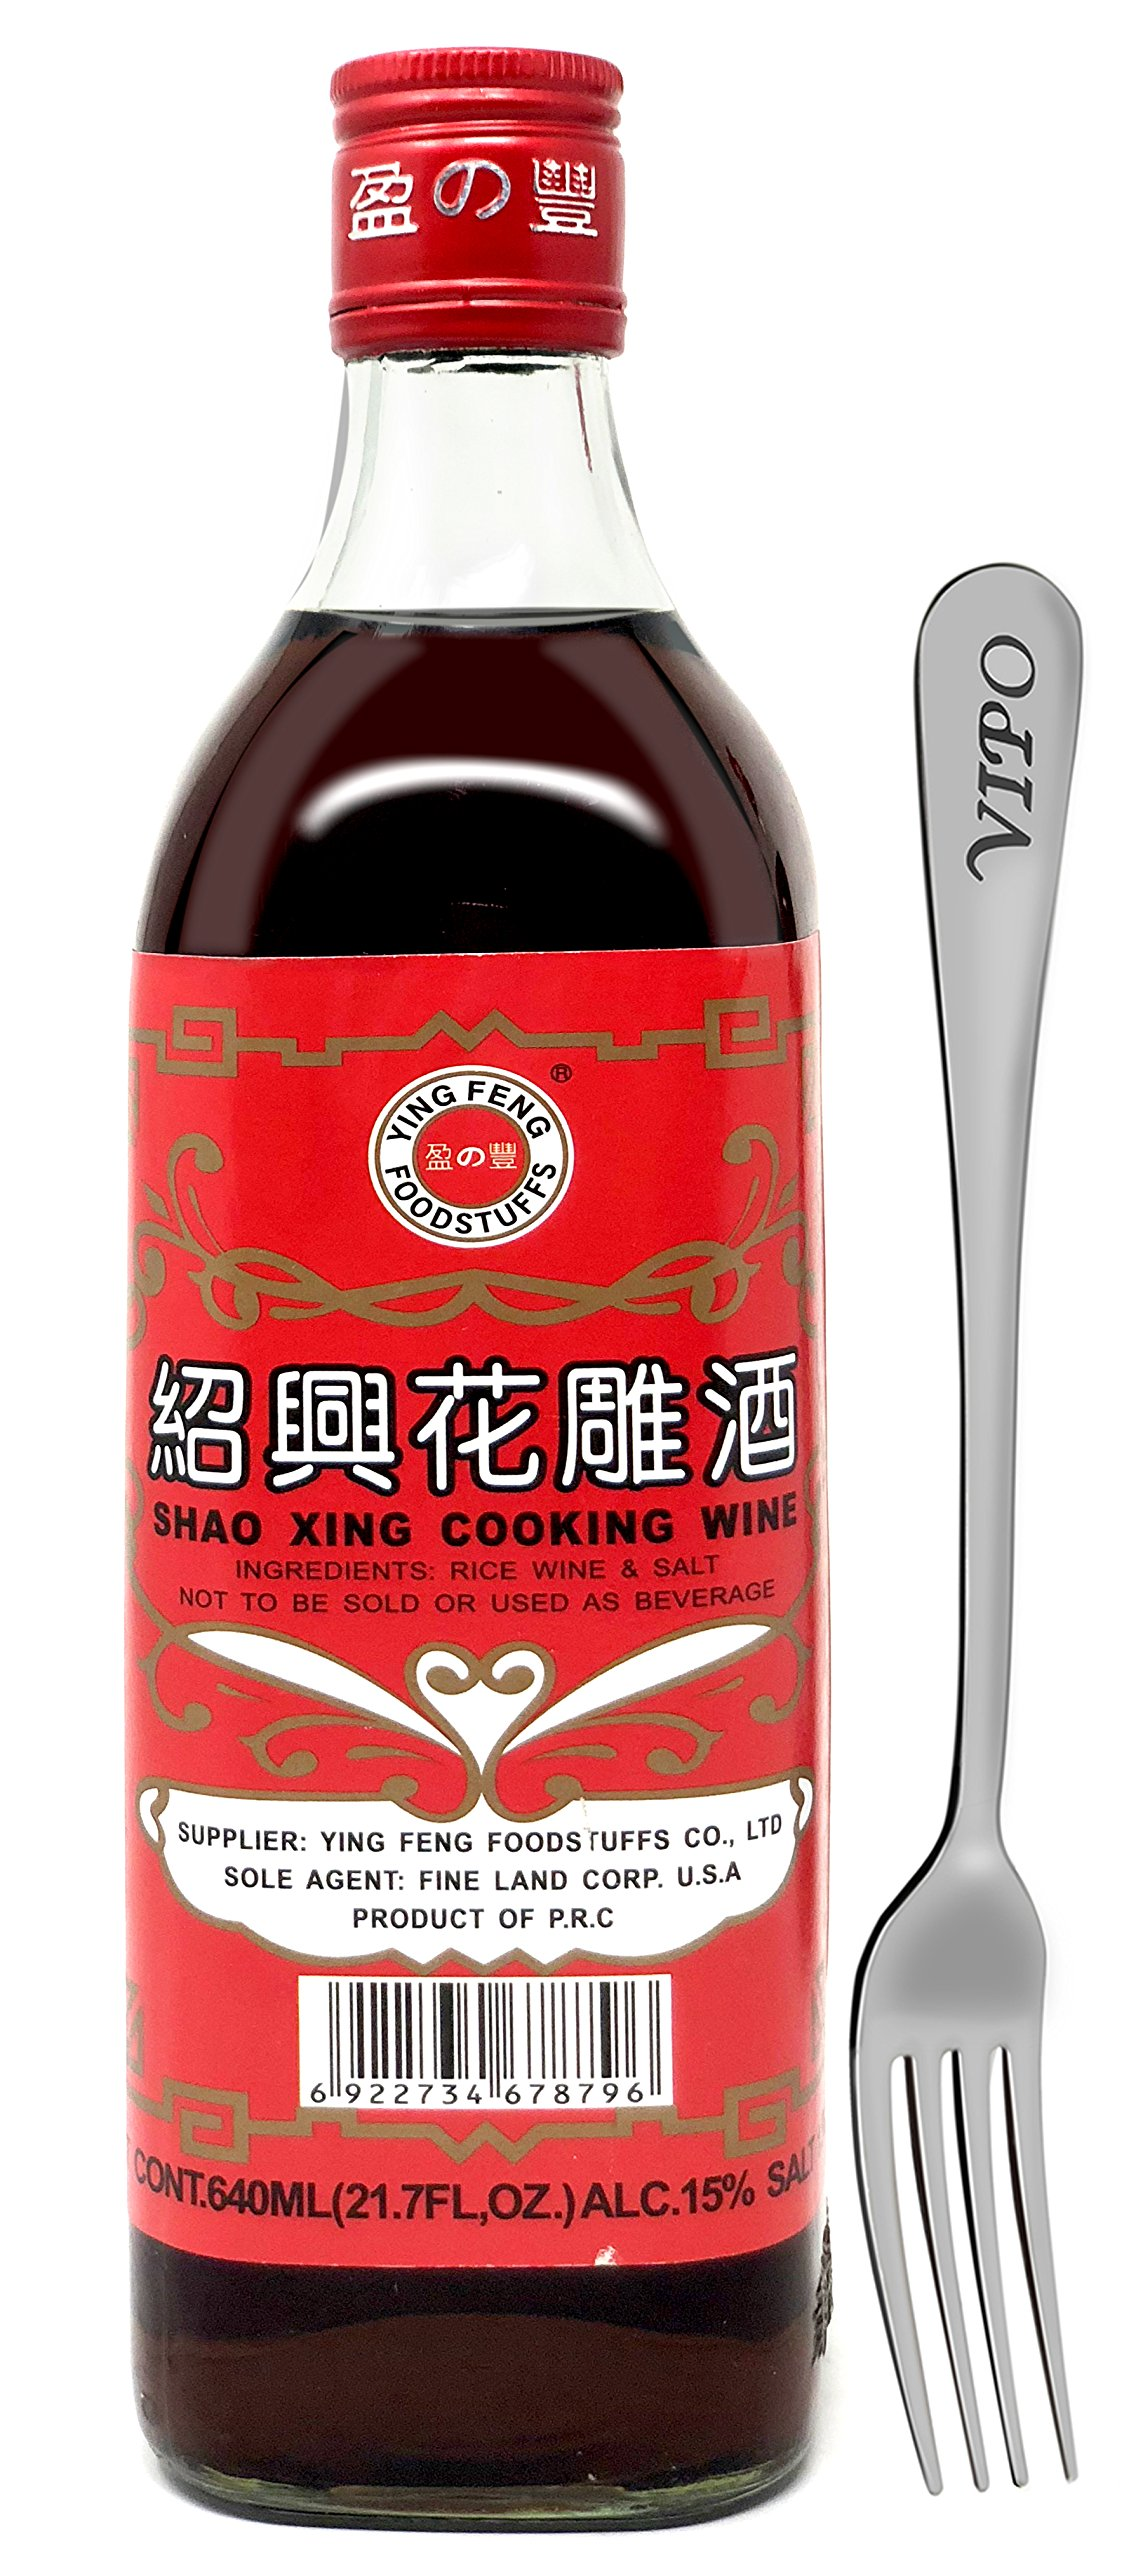 SHAOHSING RICE COOKING WINE 640ML(21.7 Fl, OZ) (Ying Feng Brand) Comes With Free Vipo Fork. (1 Bottle) by Ying Feng